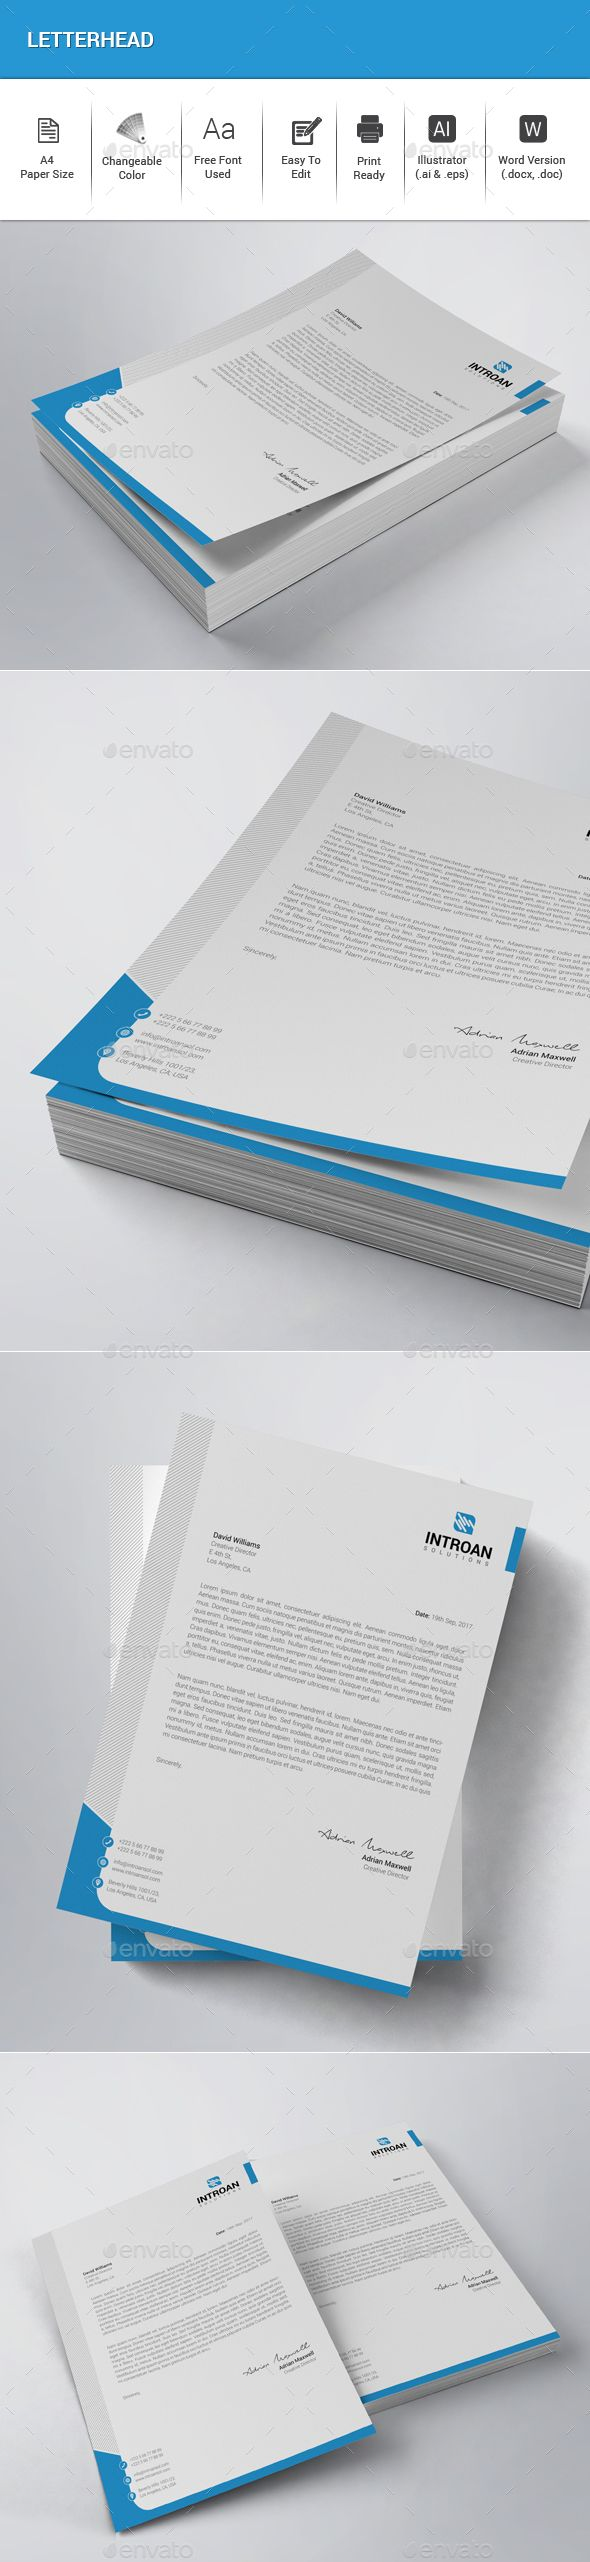 Letterhead   Features:  • Illustrator (.ai & .eps) • MS Word Included (.docx & .doc) • Very Easy to Edit • Page size A4 (210×297mm) • Bleed 0.25 inch • Only Free Fonts Used • CMYK, 300DPI, Print Ready  Fonts Used: • Roboto